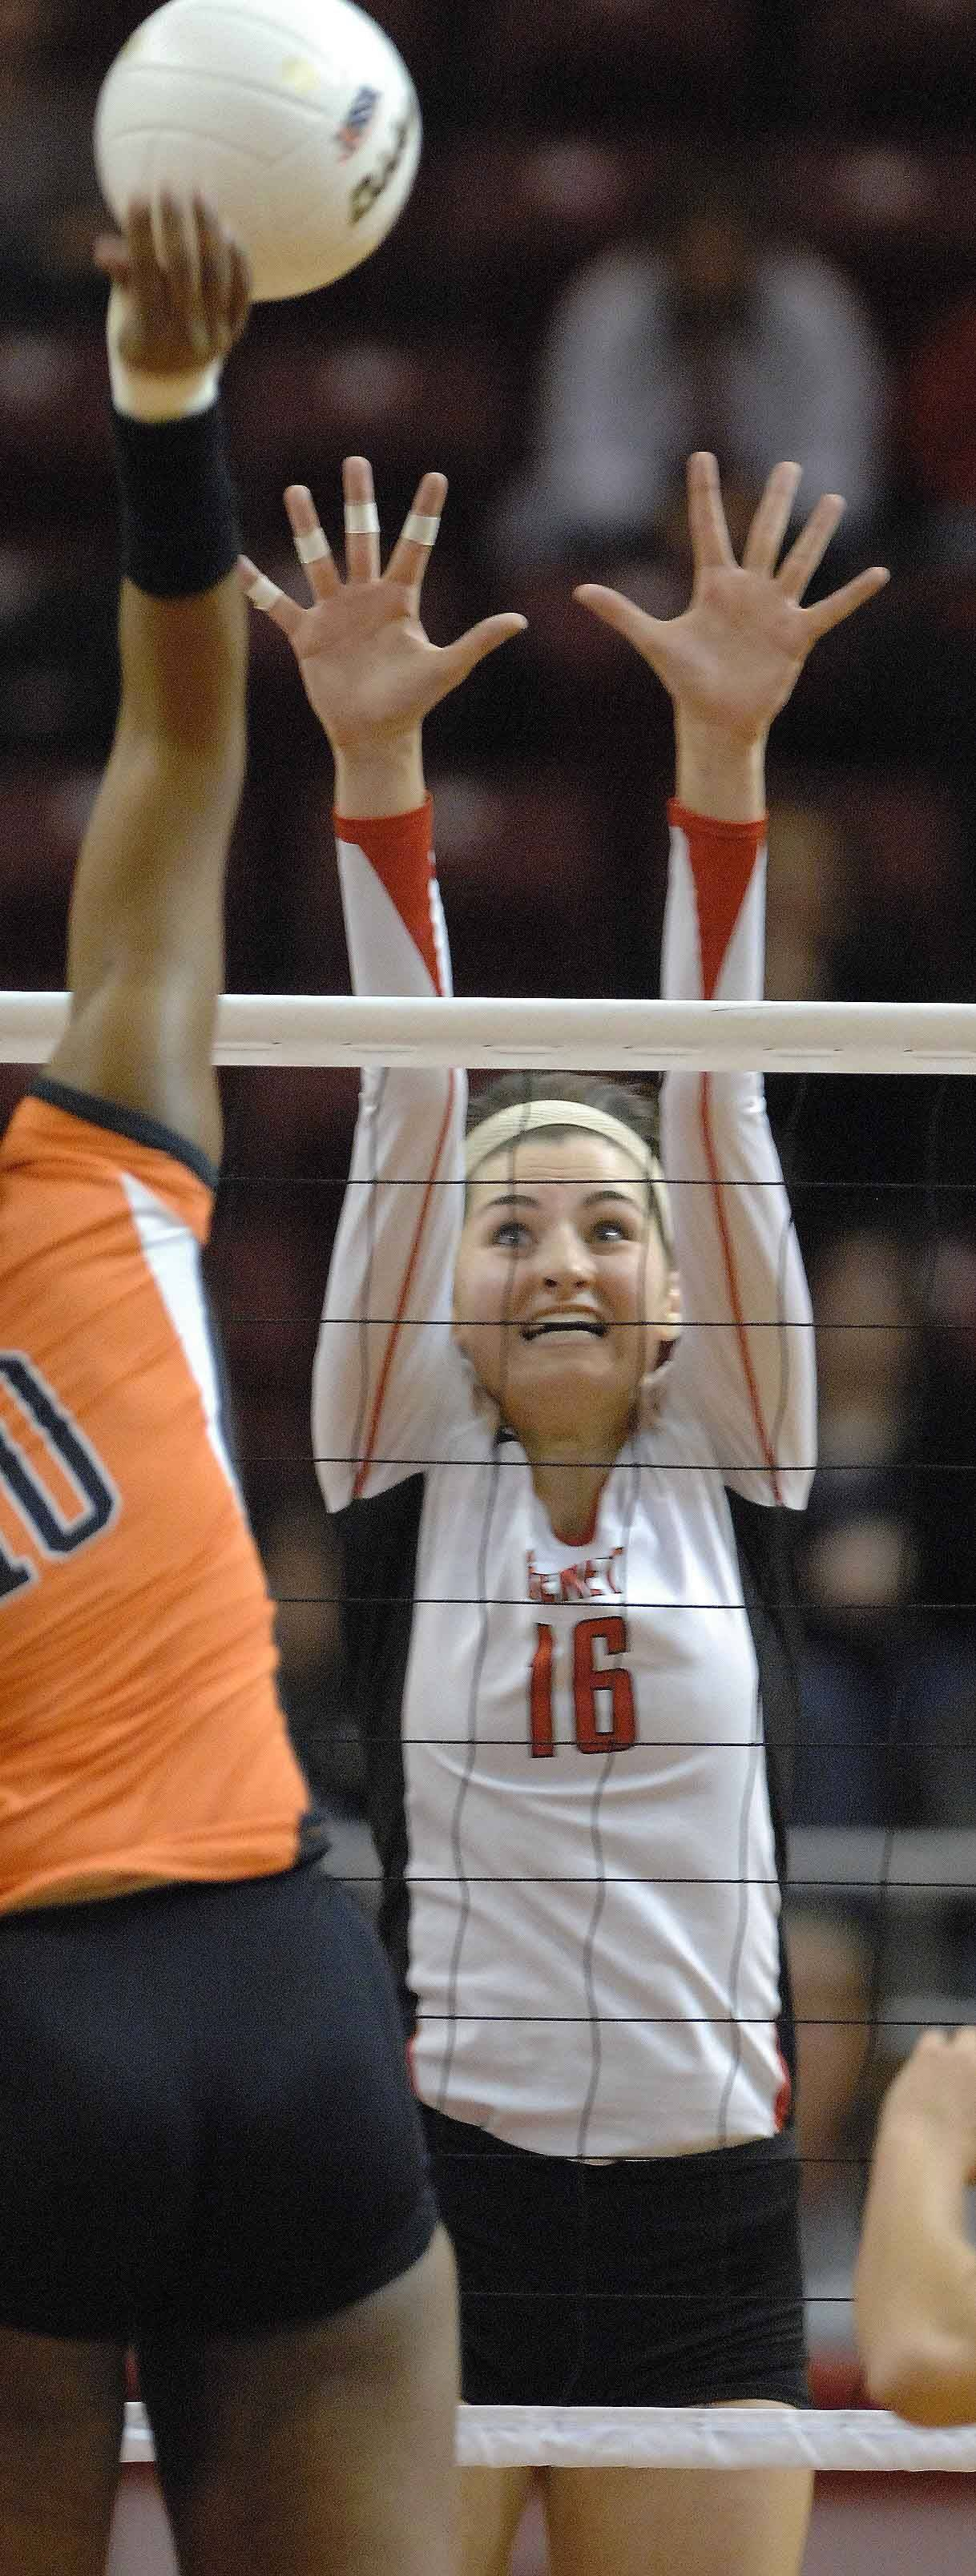 Nora Young of Benet block one during the Benet vs. St. Charles East girls volleyball 4A semifinal Friday in Normal.